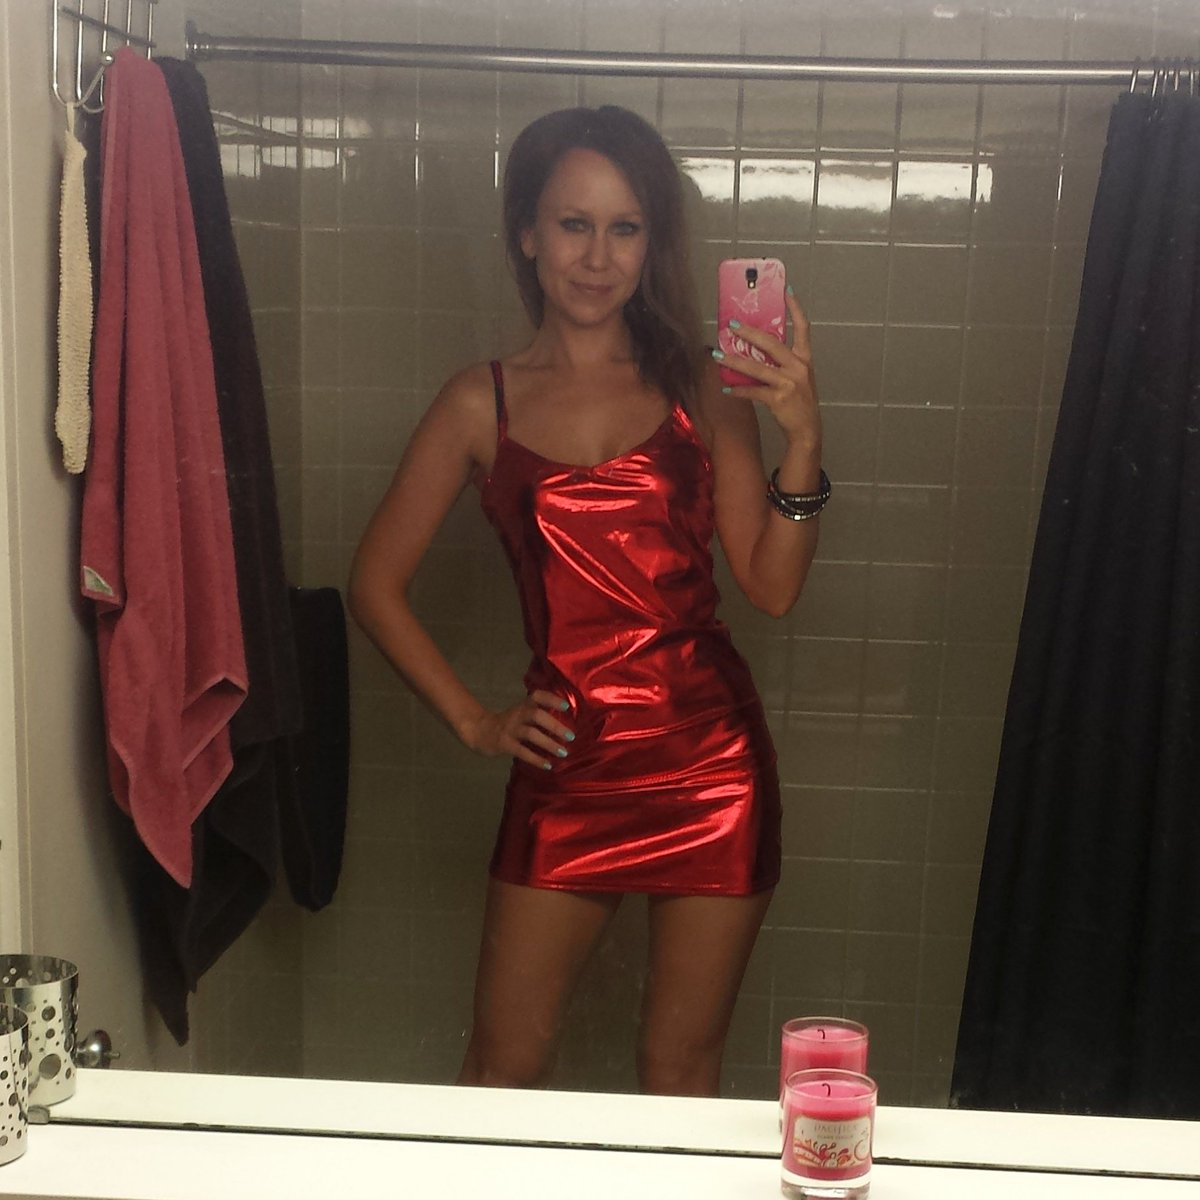 3 weeks without a #bathtubselfie is criminal! Going to dance hard tonight!!  #clubbing #reddress #saturdaynight #montreal #xo<br>http://pic.twitter.com/BbNeGS0jVq